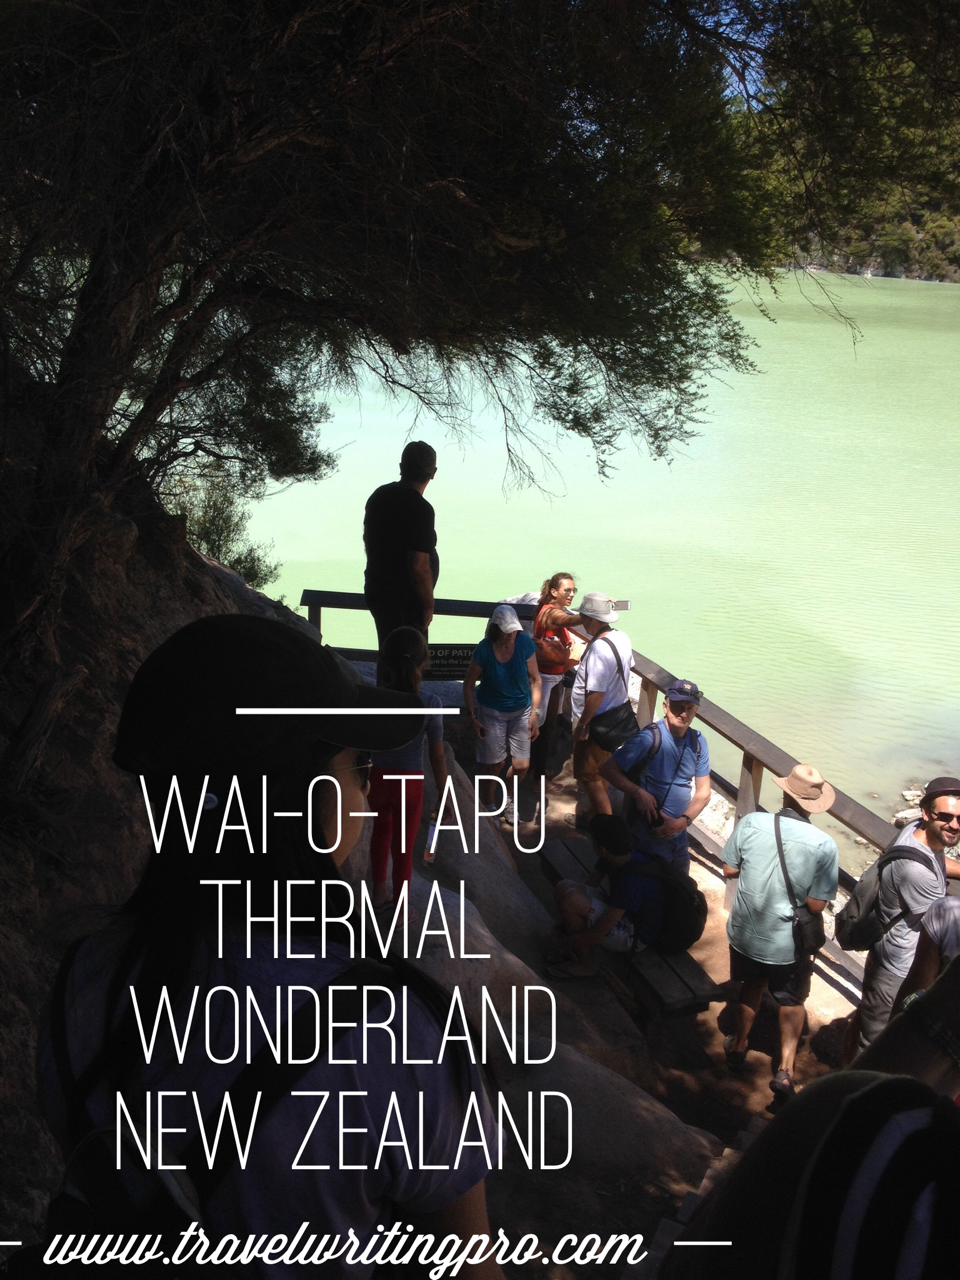 Wai-O-Tapu Thermal Wonderland of North Island New Zealand